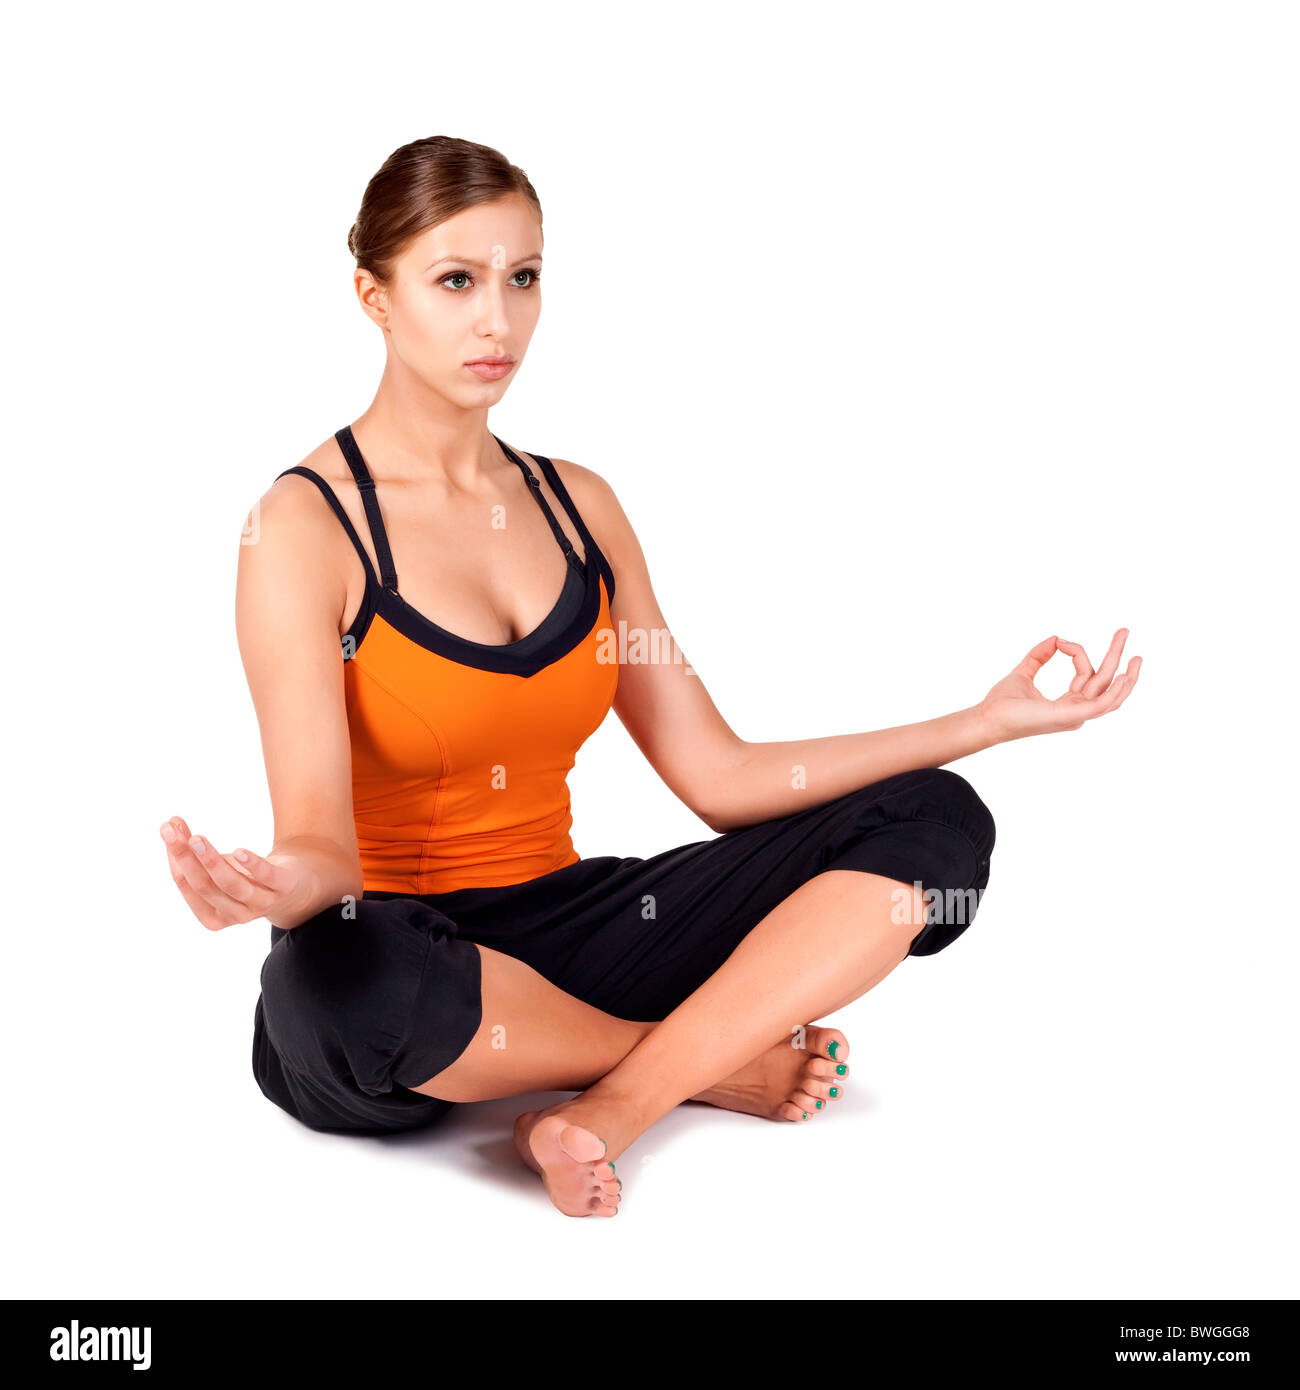 Woman Doing Popular Yoga Pose Called Easy Sanskrit Name Sukhasana Great For Breath Control Concentration And Meditation